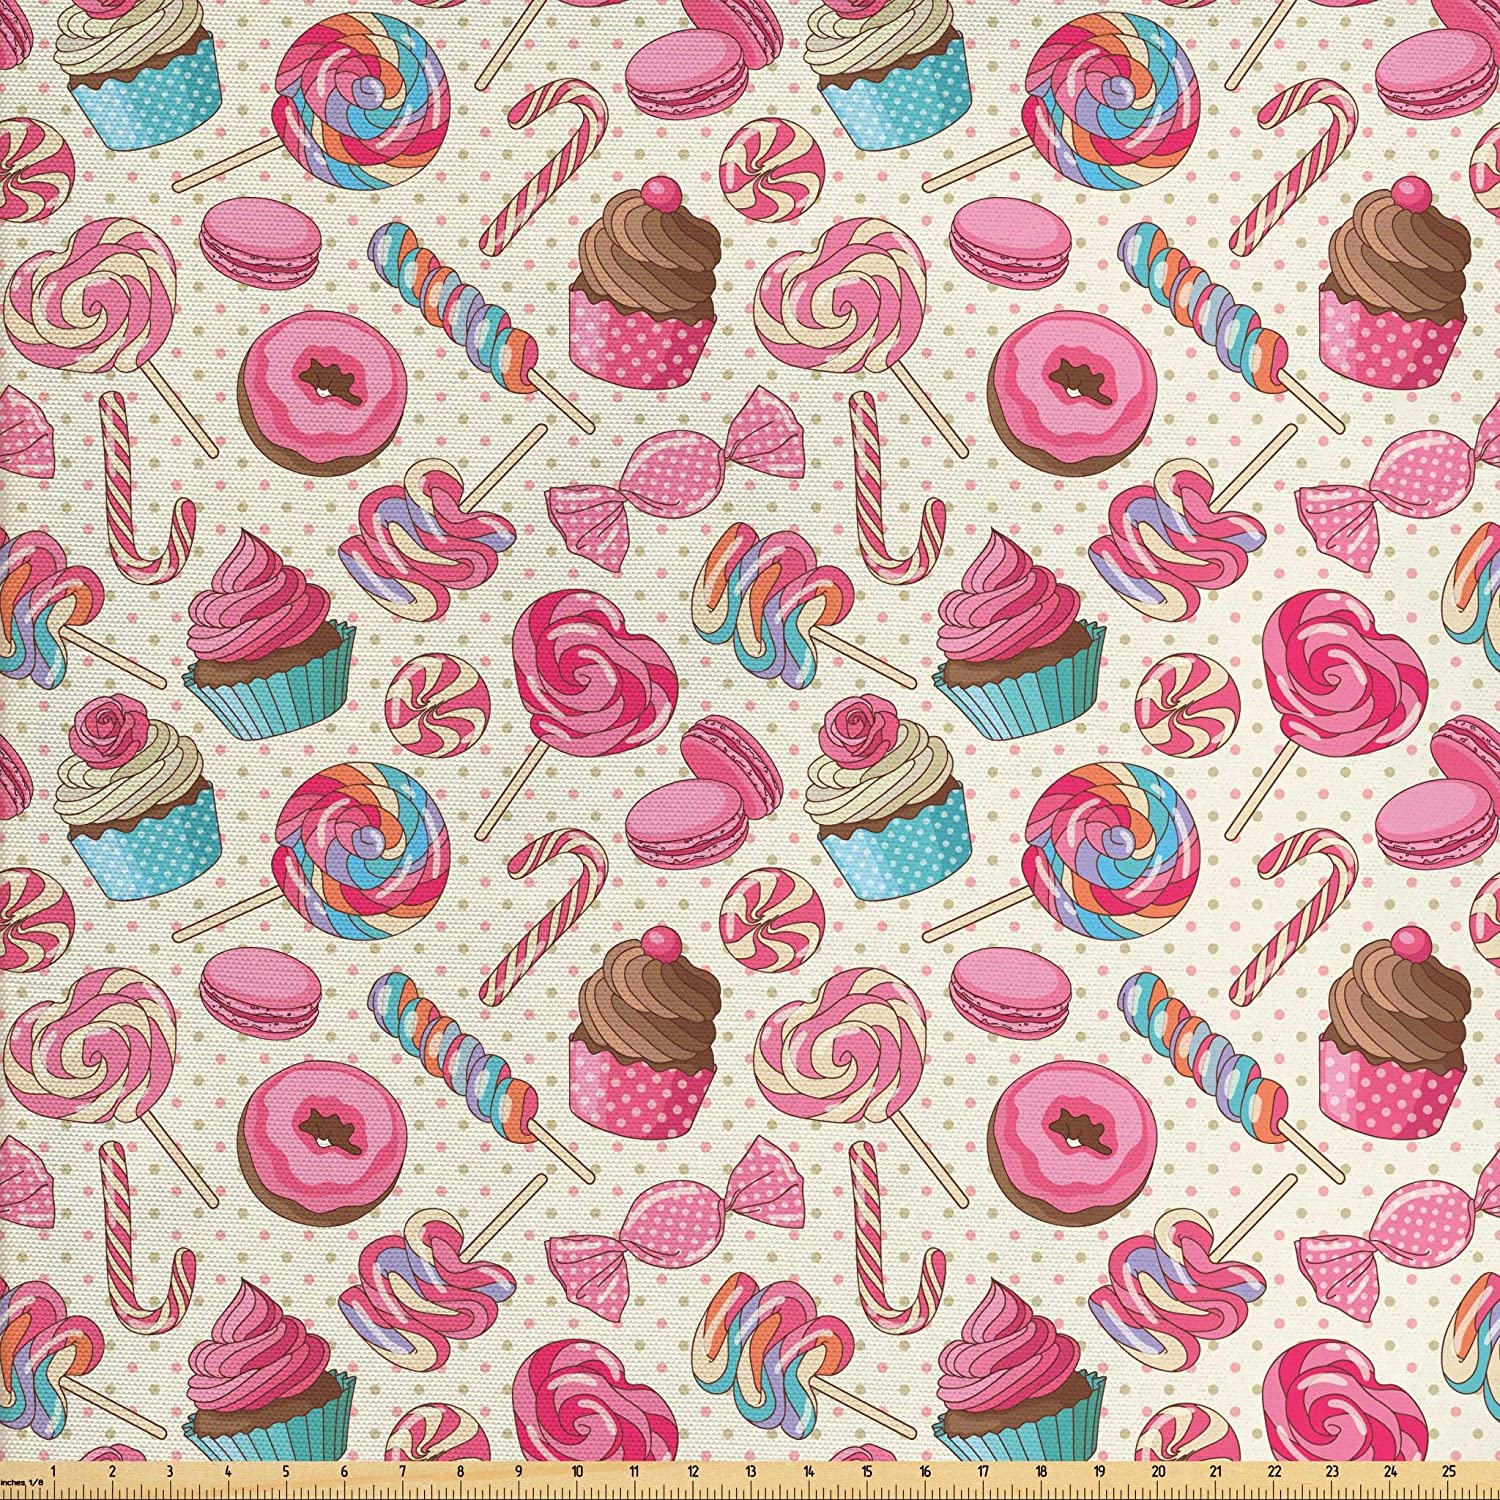 Ambesonne Candy Cane Fabric by The Yard, Yummy Sweet Lollipop Candy Macaroon Cupcake and Donut on Polka Dots Pattern, Decorative Fabric for Upholstery and Home Accents, 2 Yards, Multicolor